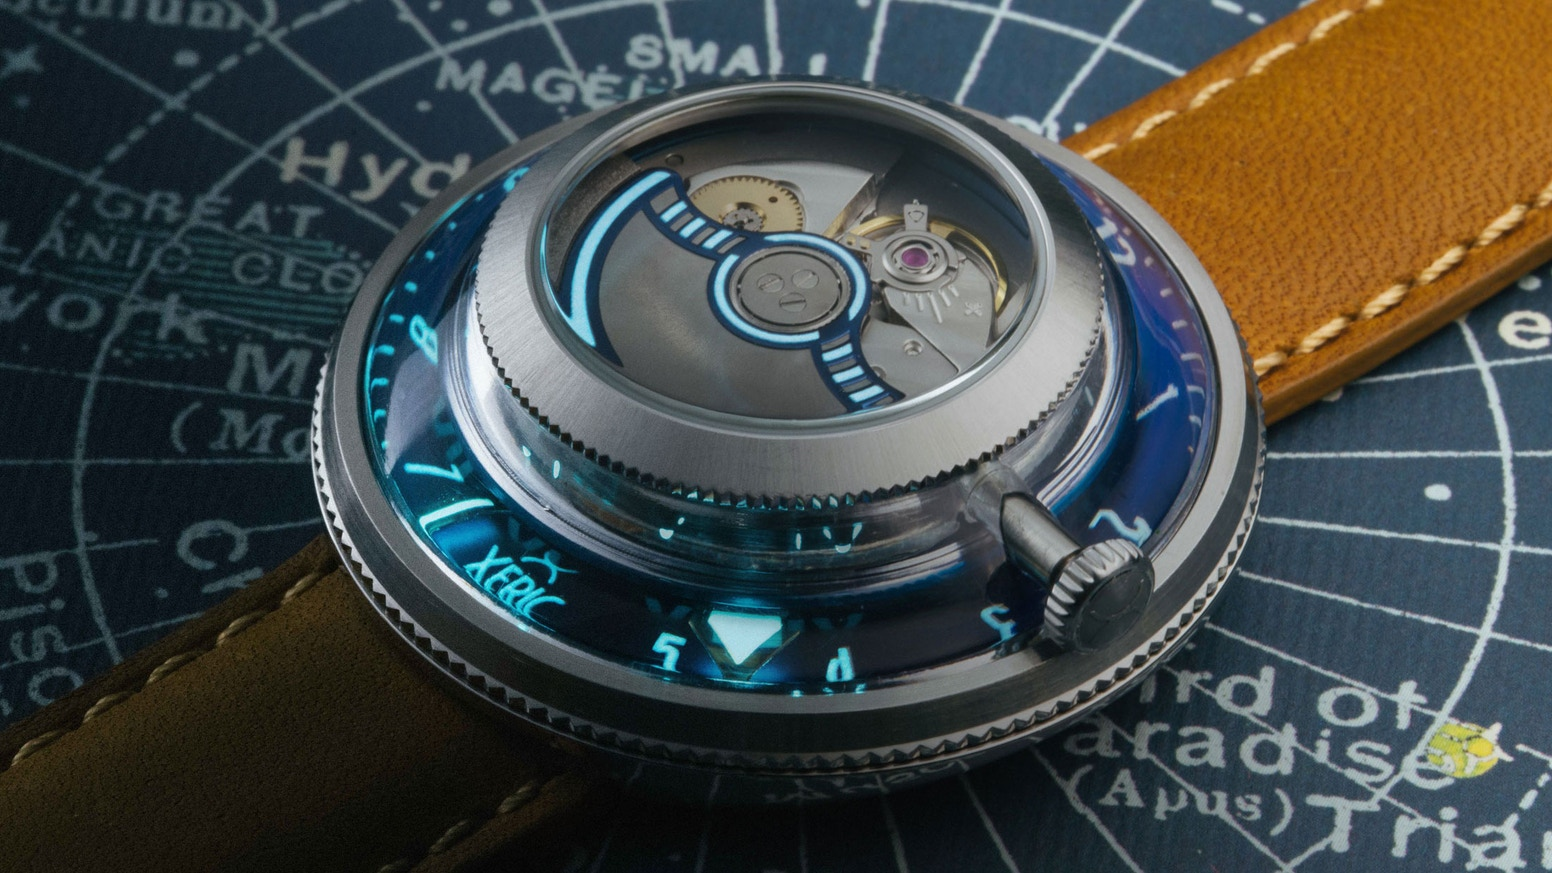 Turning the watch industry upside down! We modified a Miyota 90S5 movement so you can view the mechanics on the front of your watch.